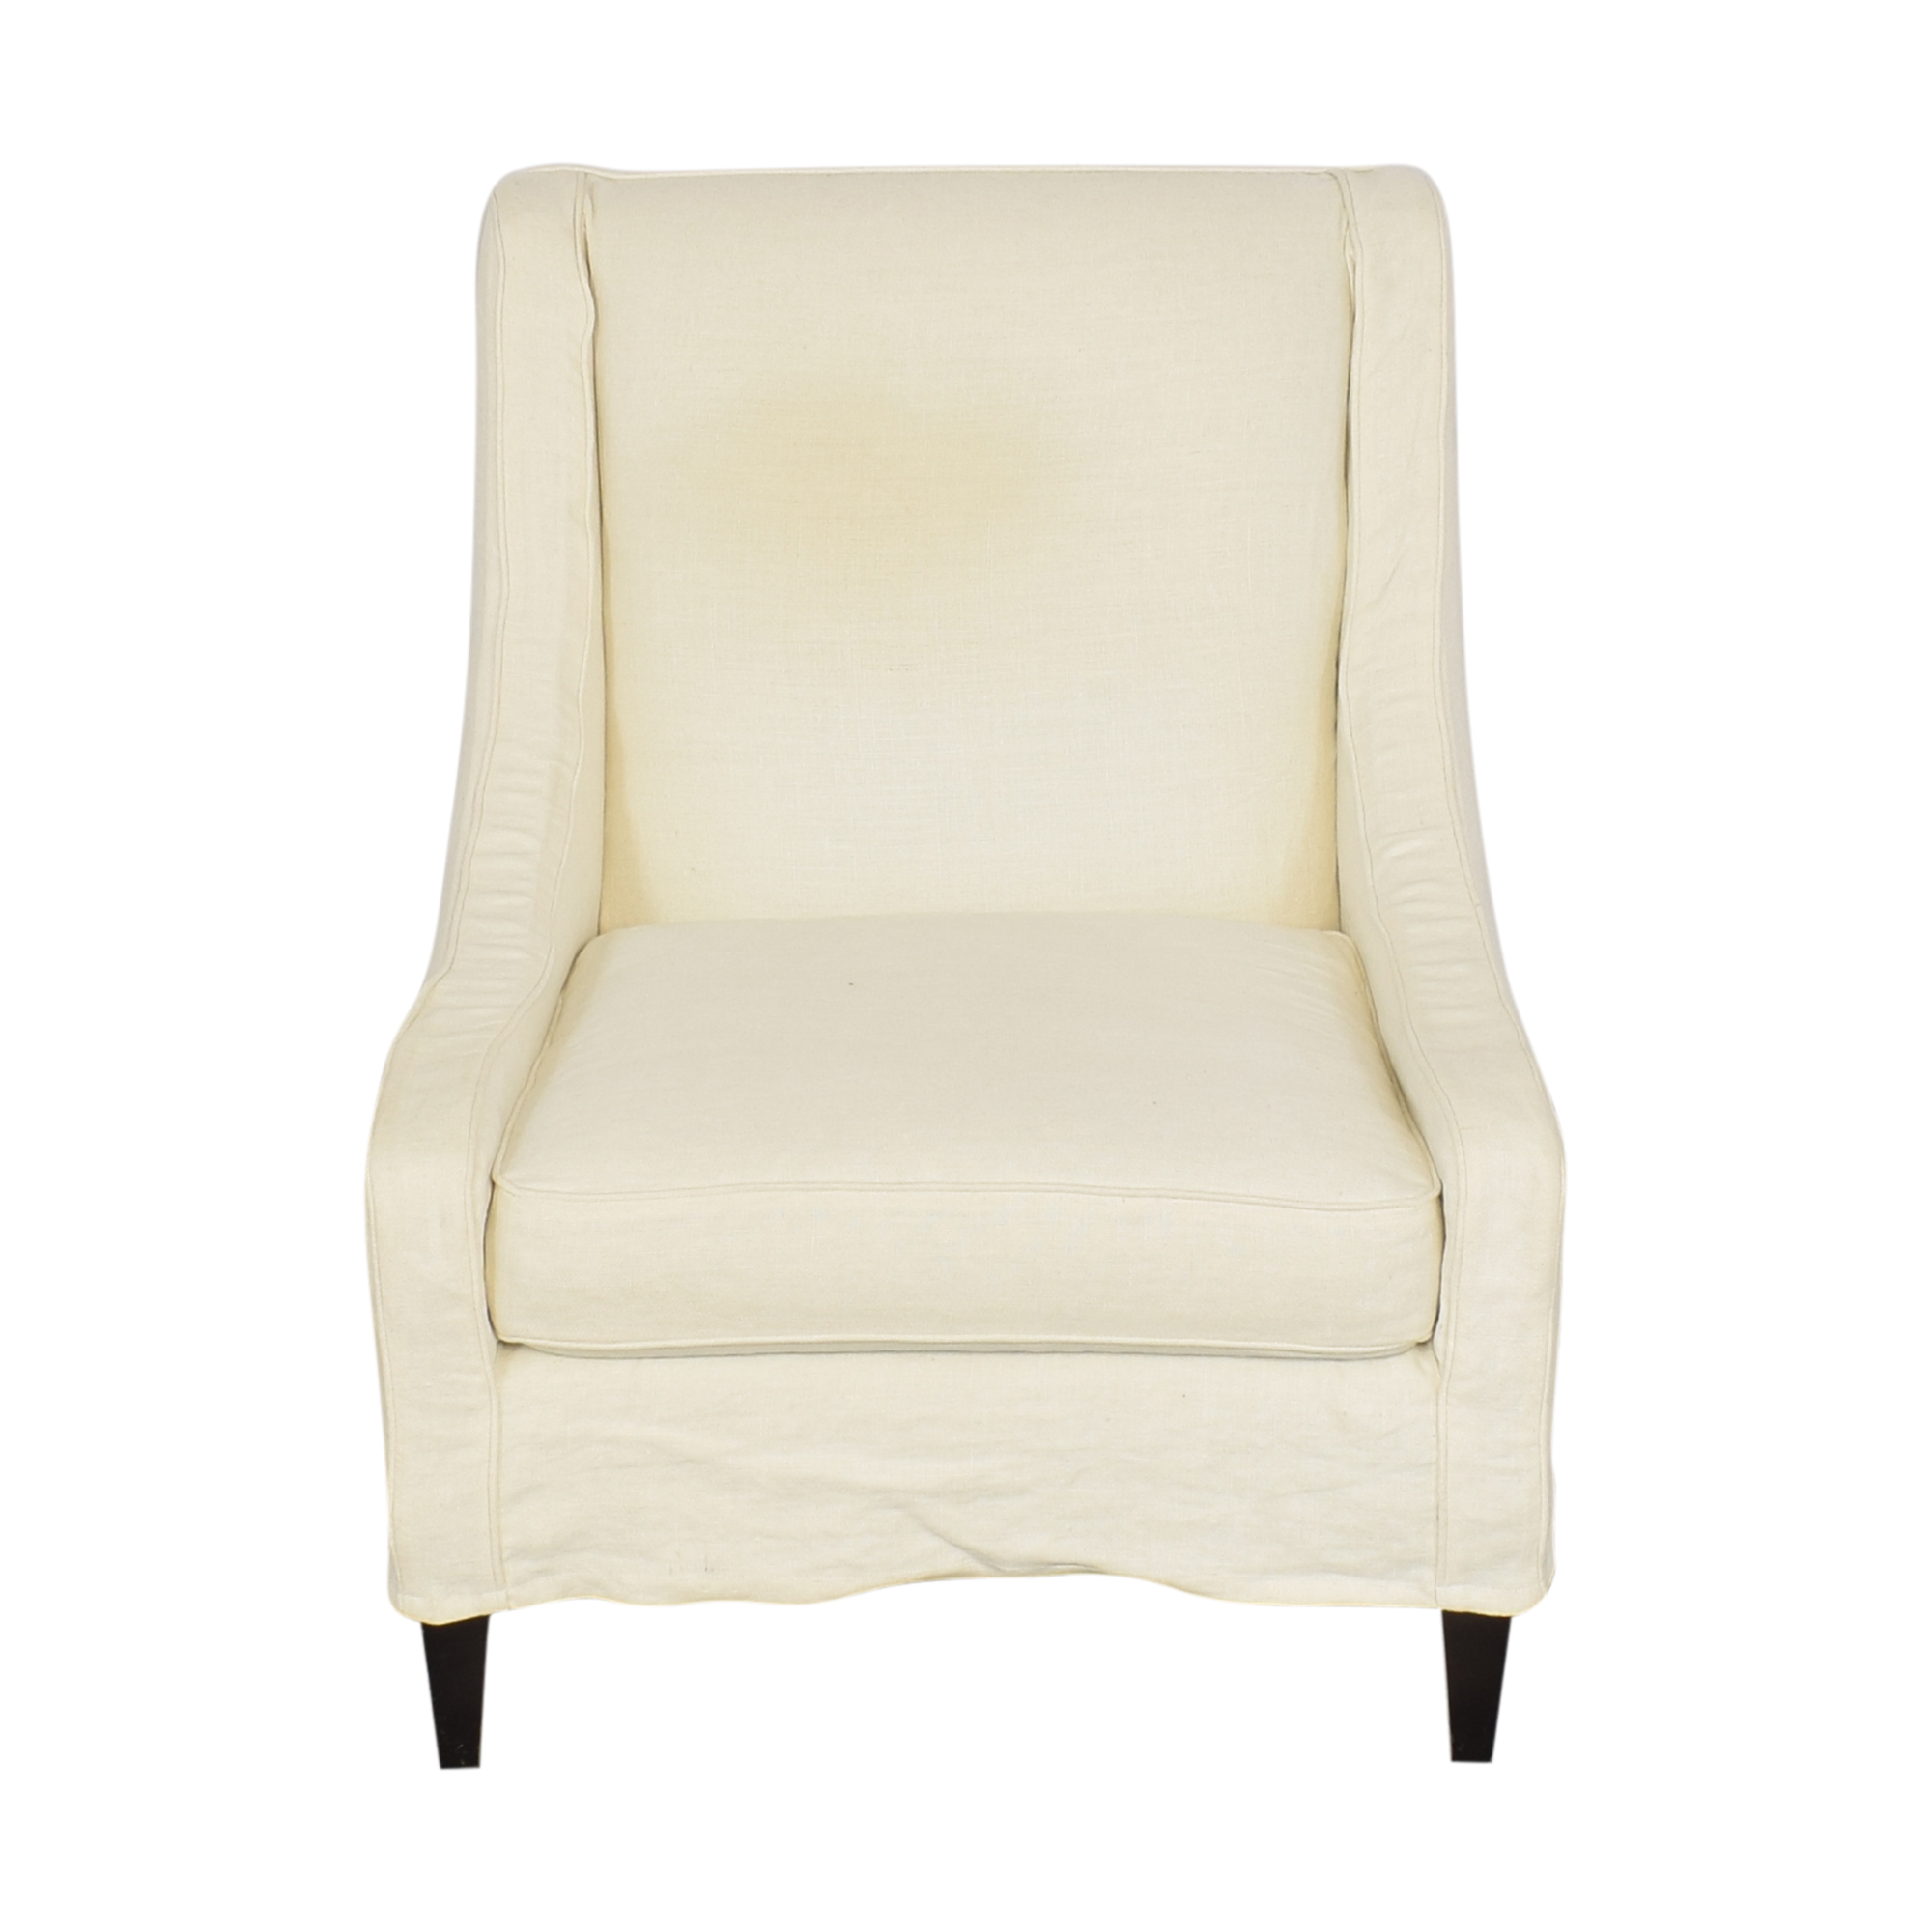 Crate & Barrel Crate & Barrel Slipcovered Accent Chair coupon